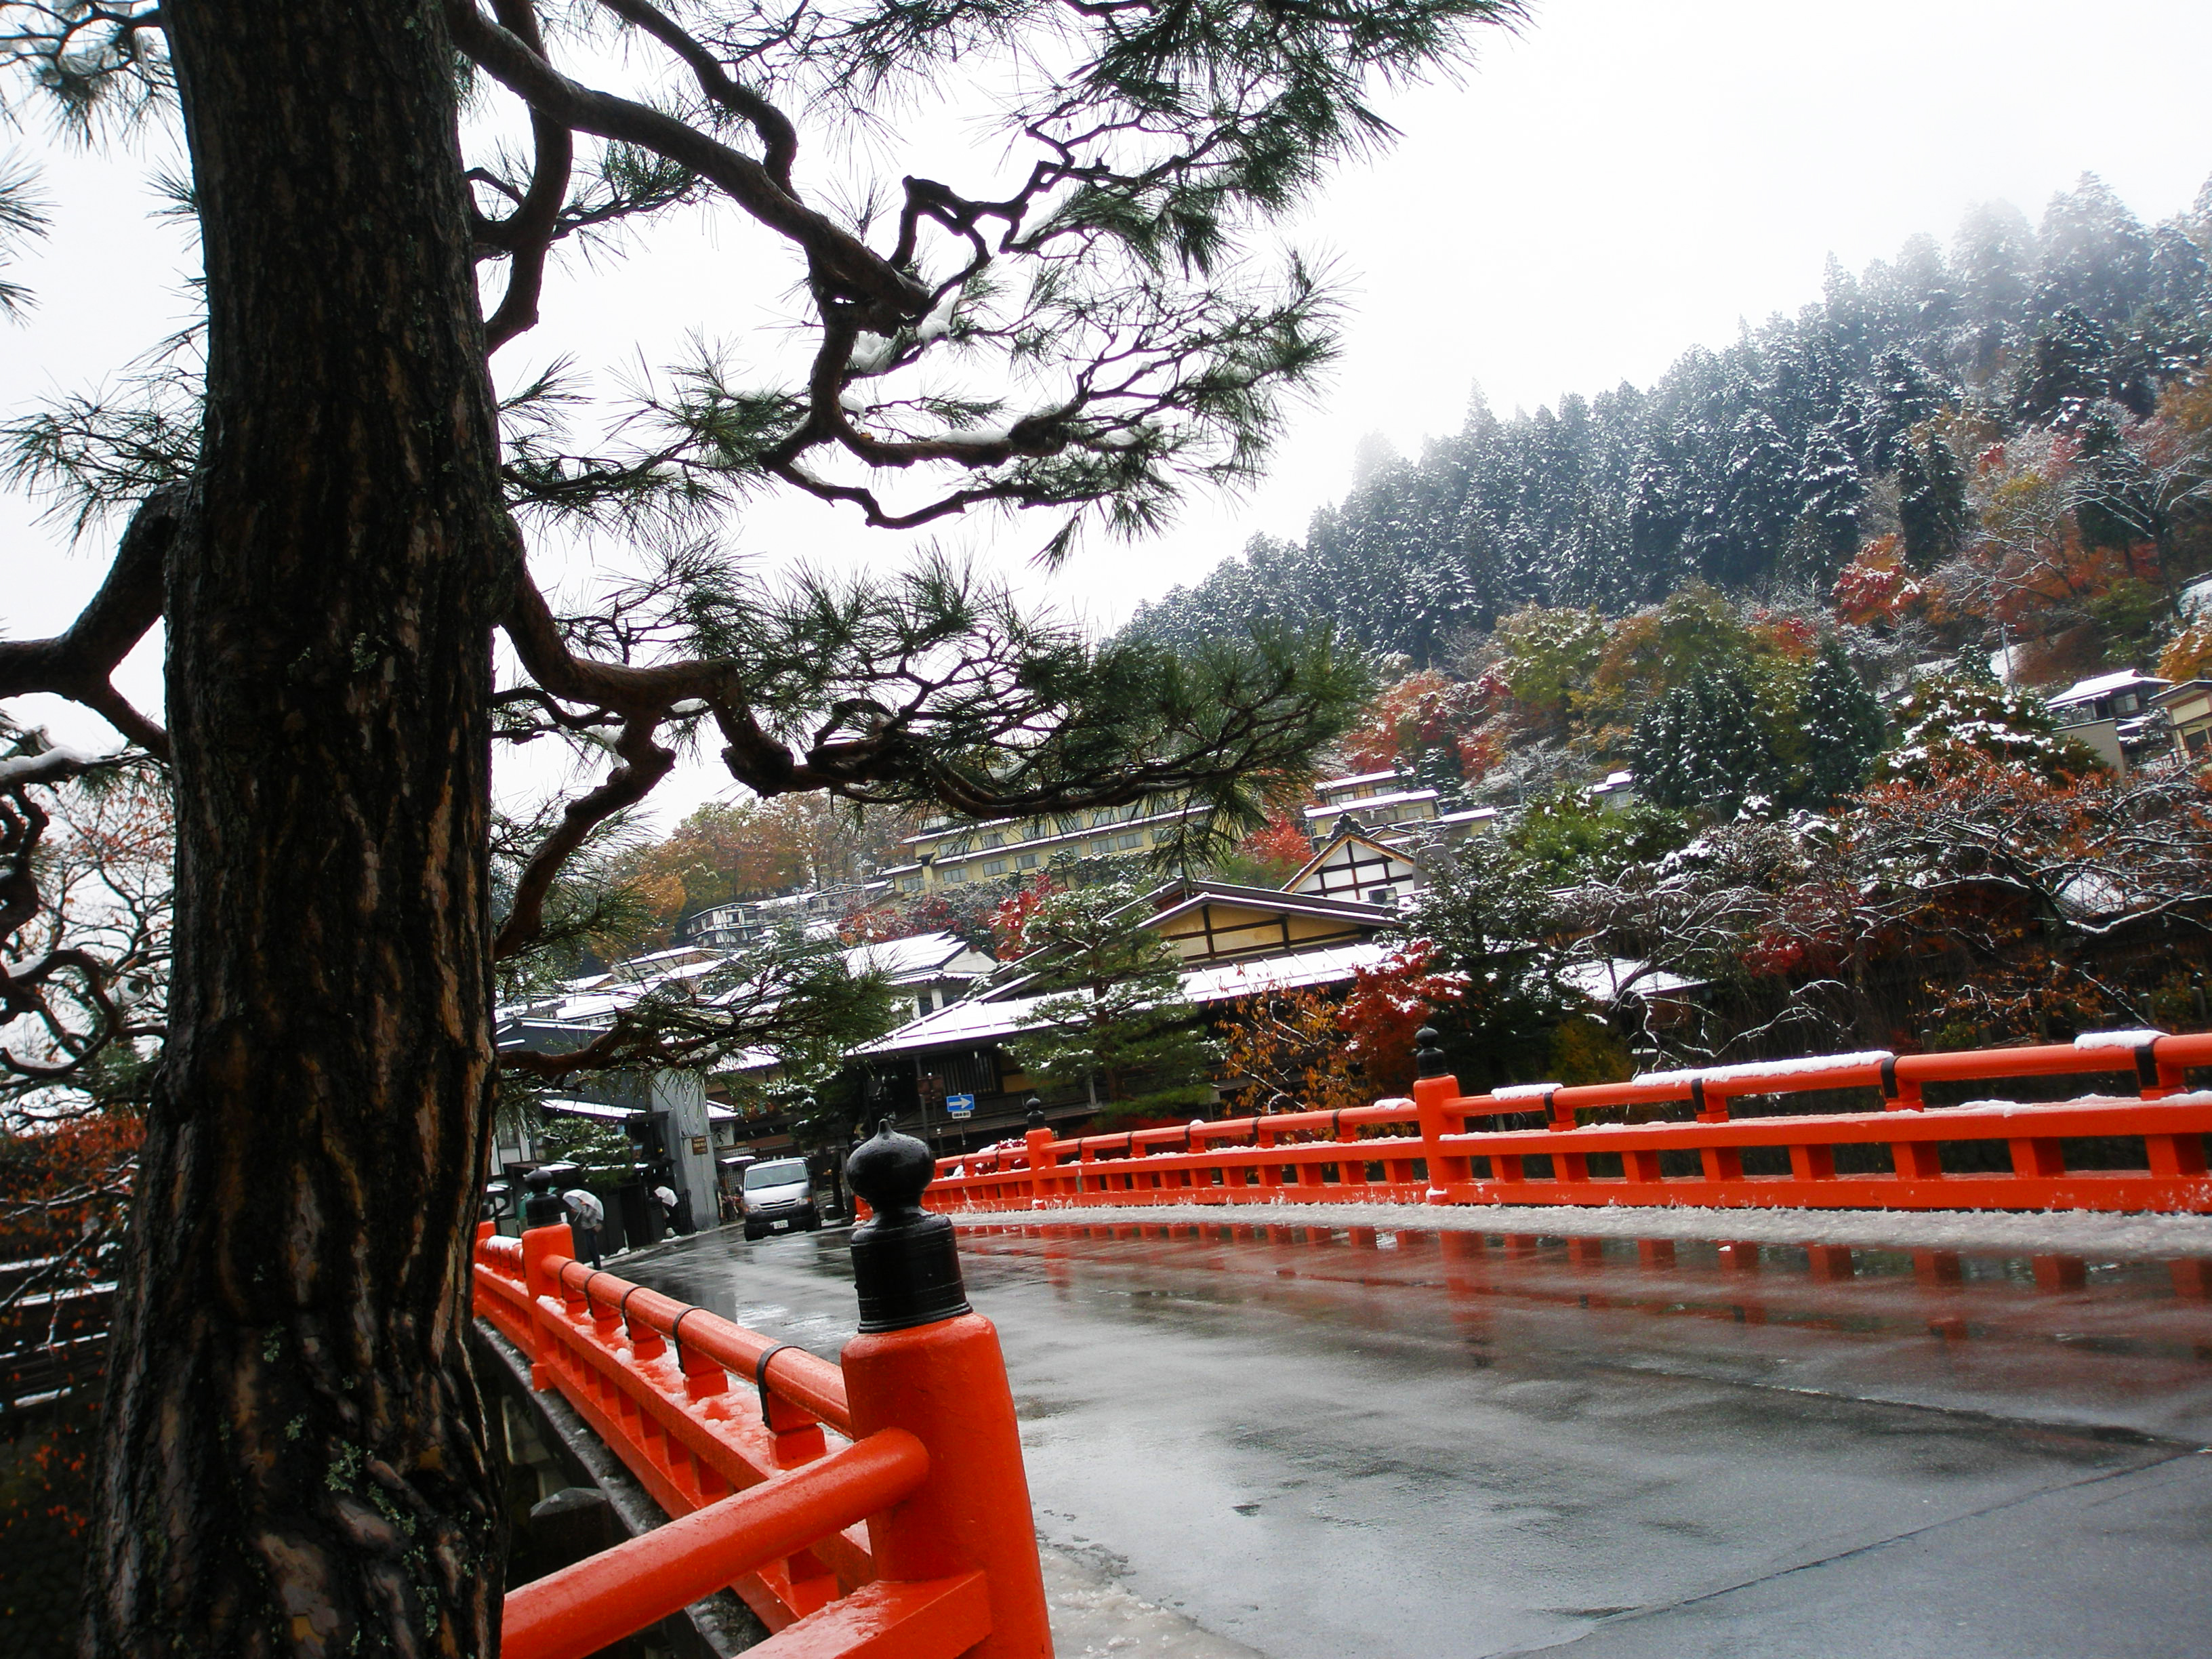 http://upload.wikimedia.org/wikipedia/commons/c/c2/Nakabashi%27s_Snowy_Autumn.JPG